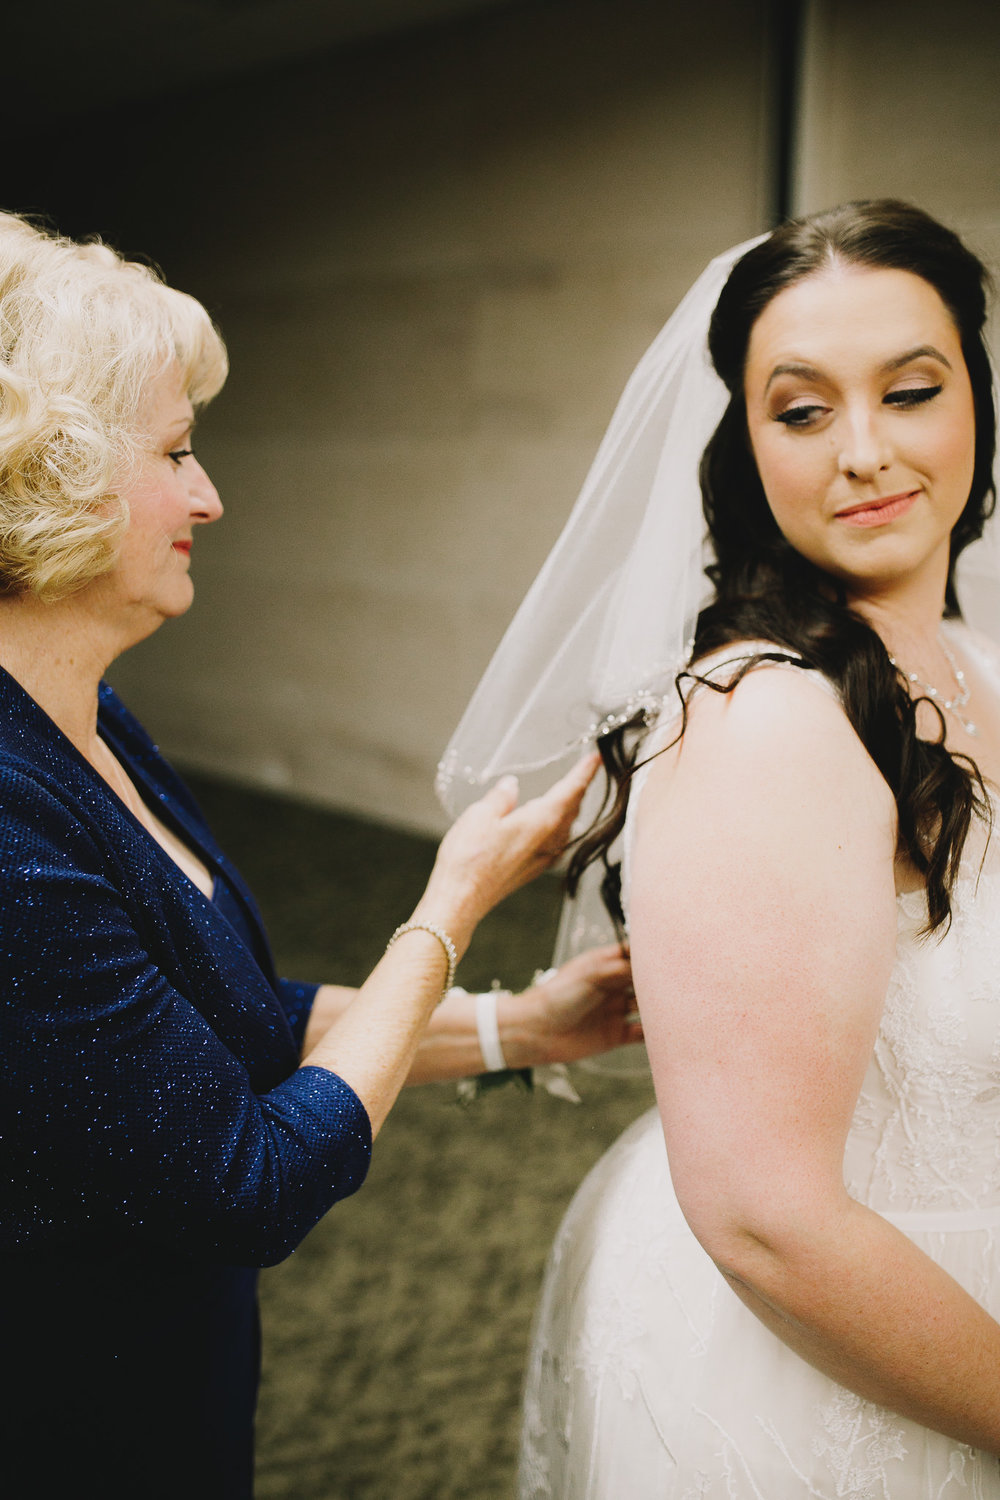 Archer Inspired Photography Shelby and Ben Wedding Sally Tomatoes NorCal Rohnert Park California-9.jpg